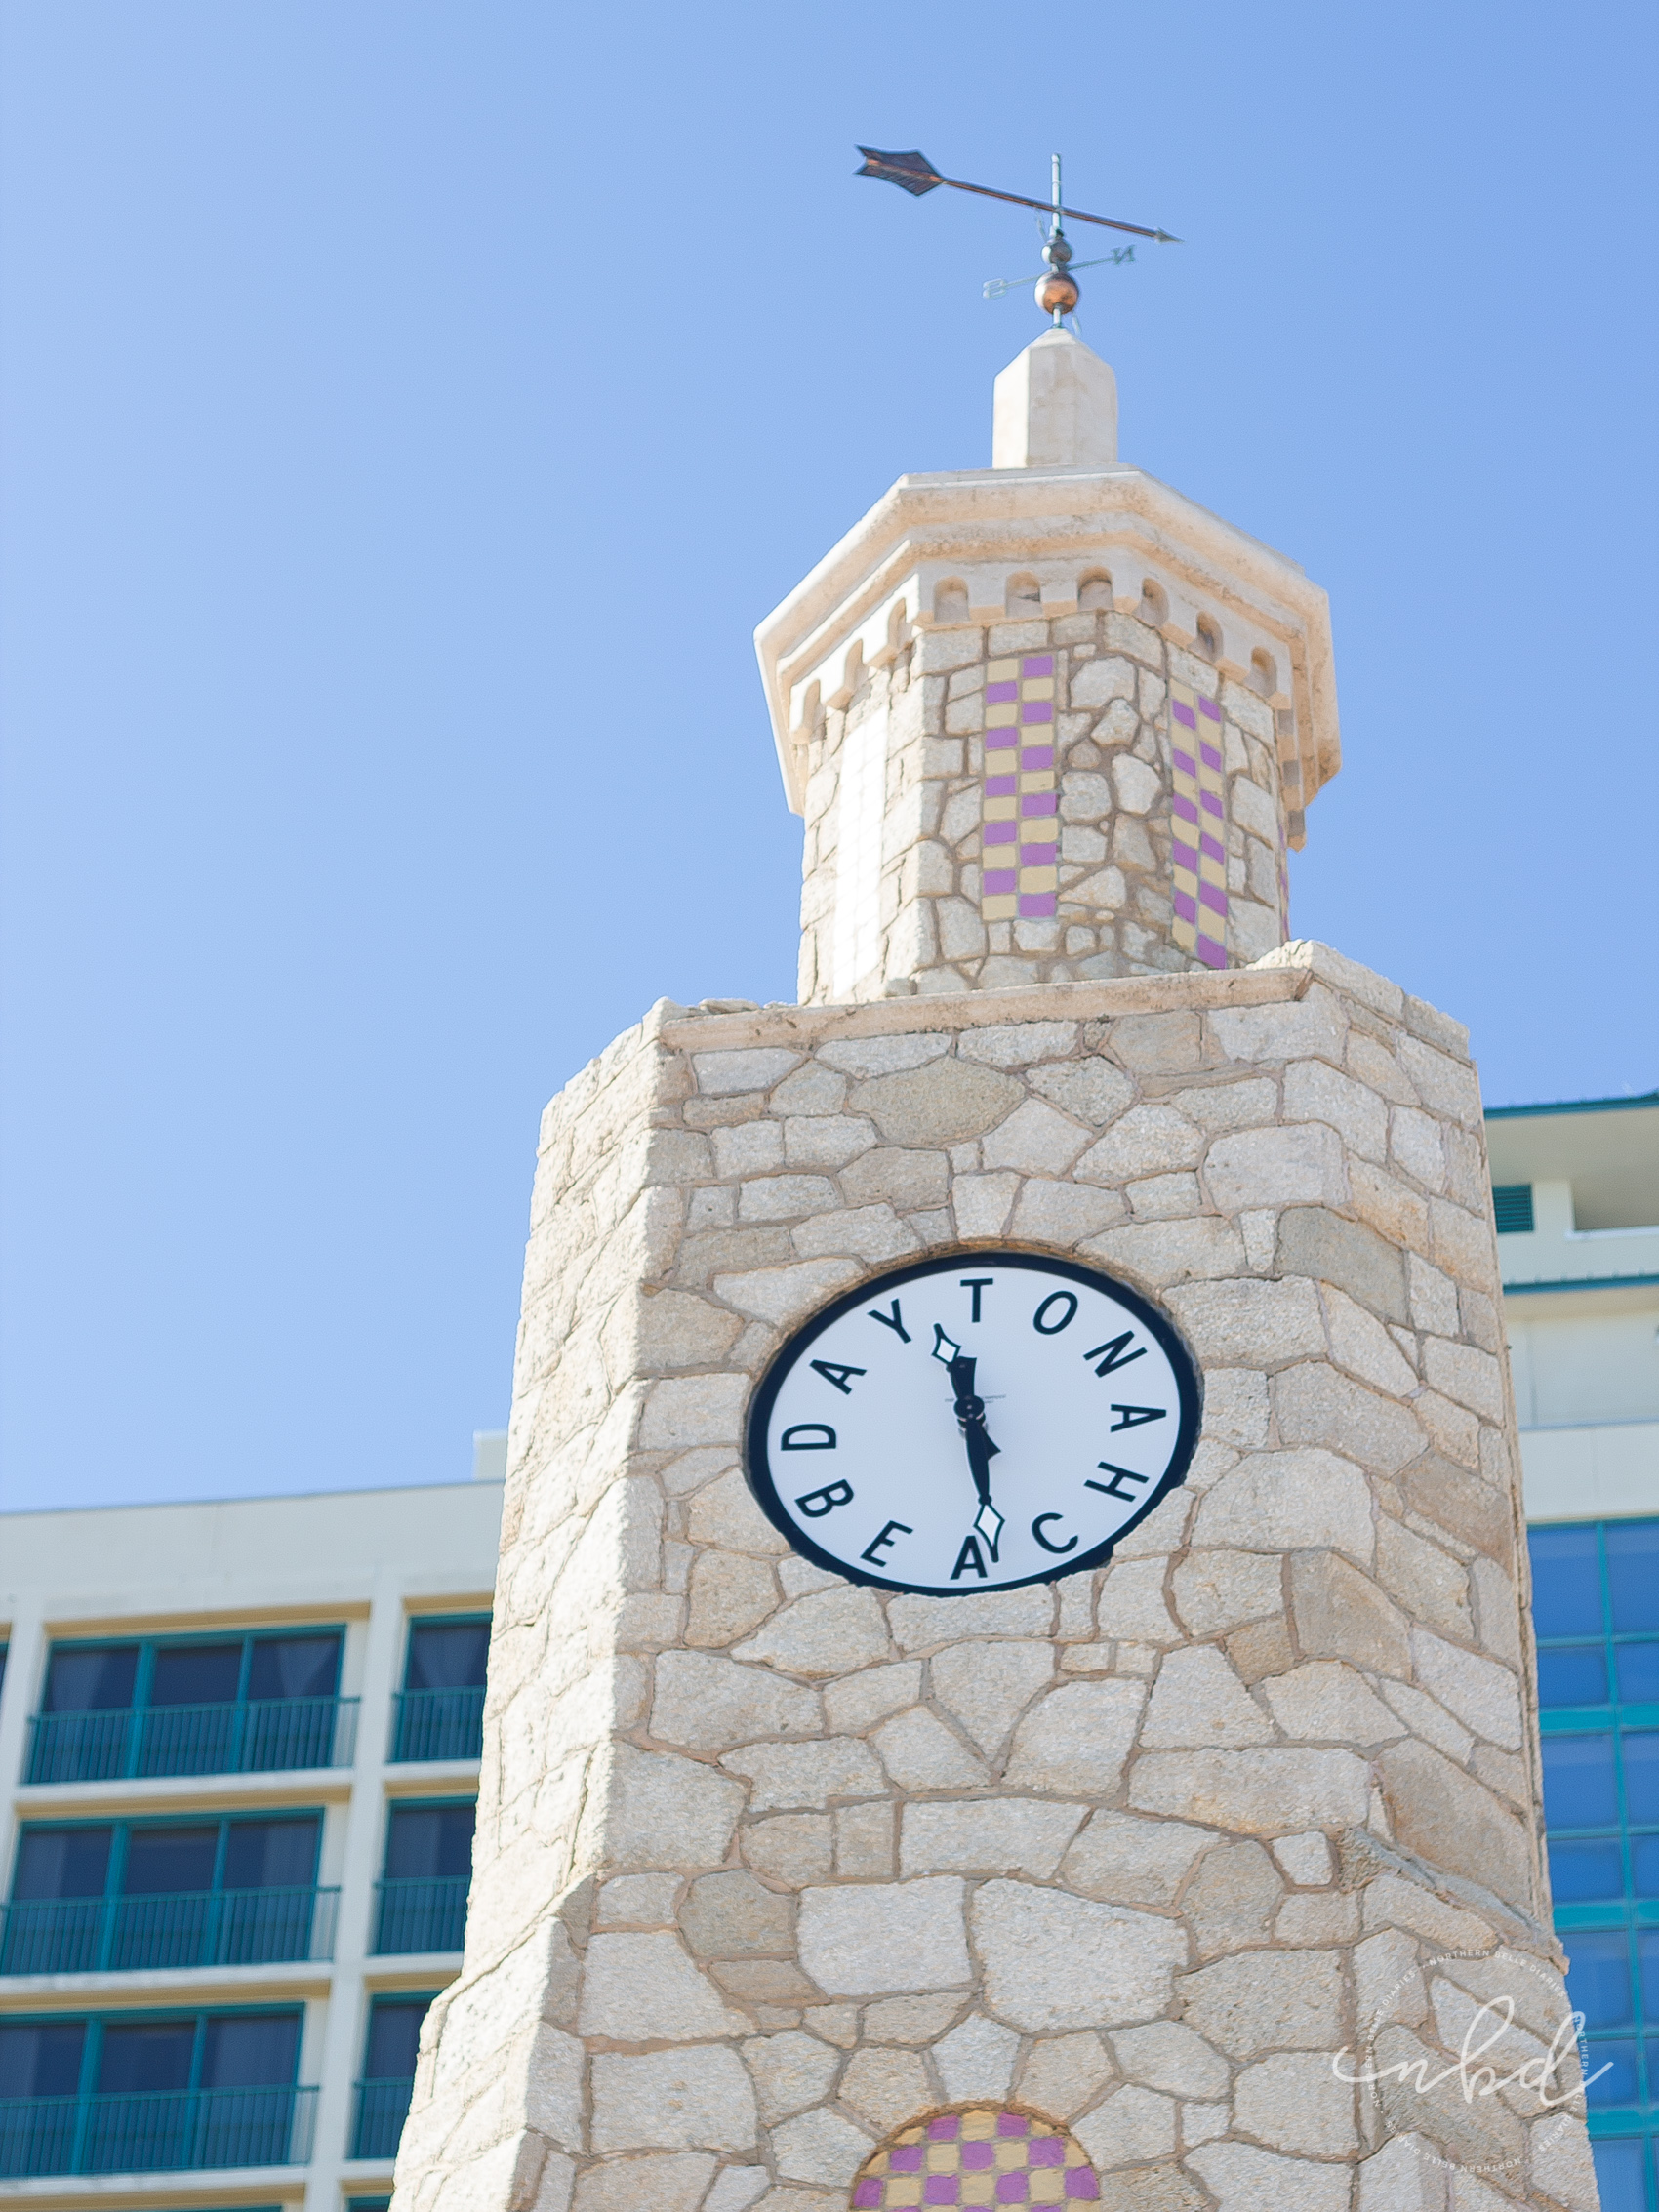 Daytona Clock - Daytona Beach